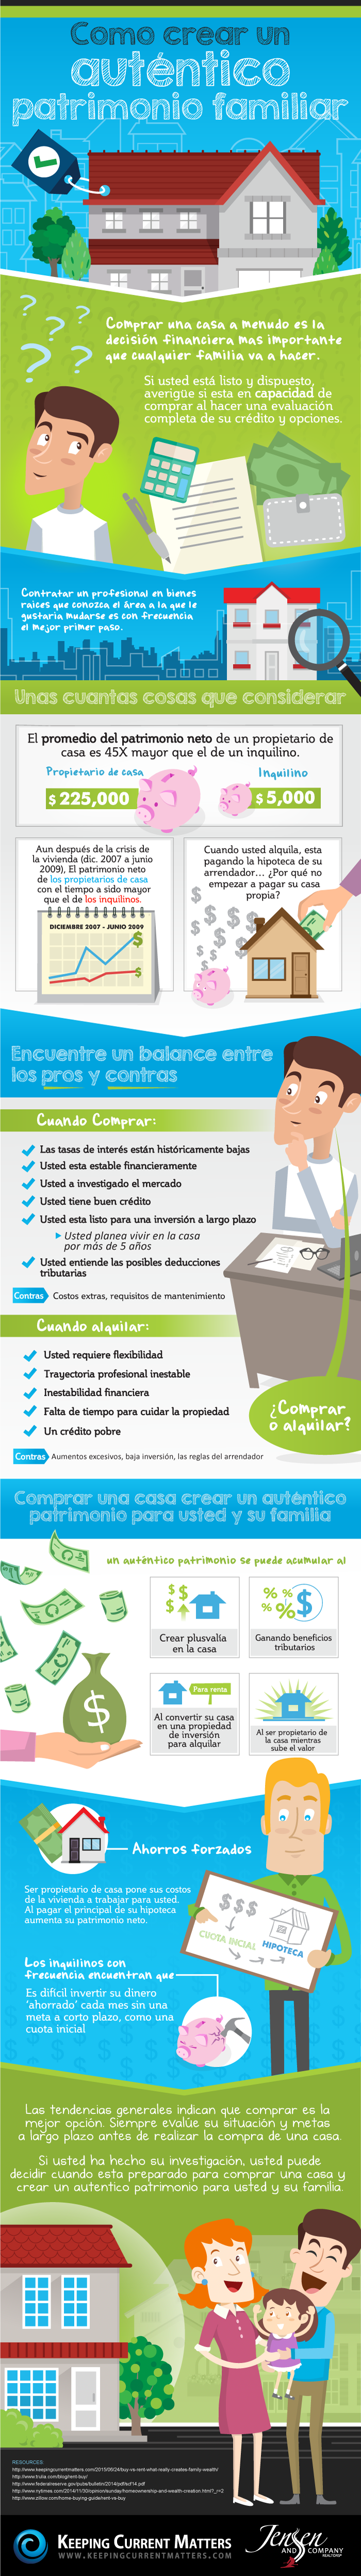 Como crear un auténtico patrimonio familiar [INFOGRAFíA]  | Keeping Current Matters